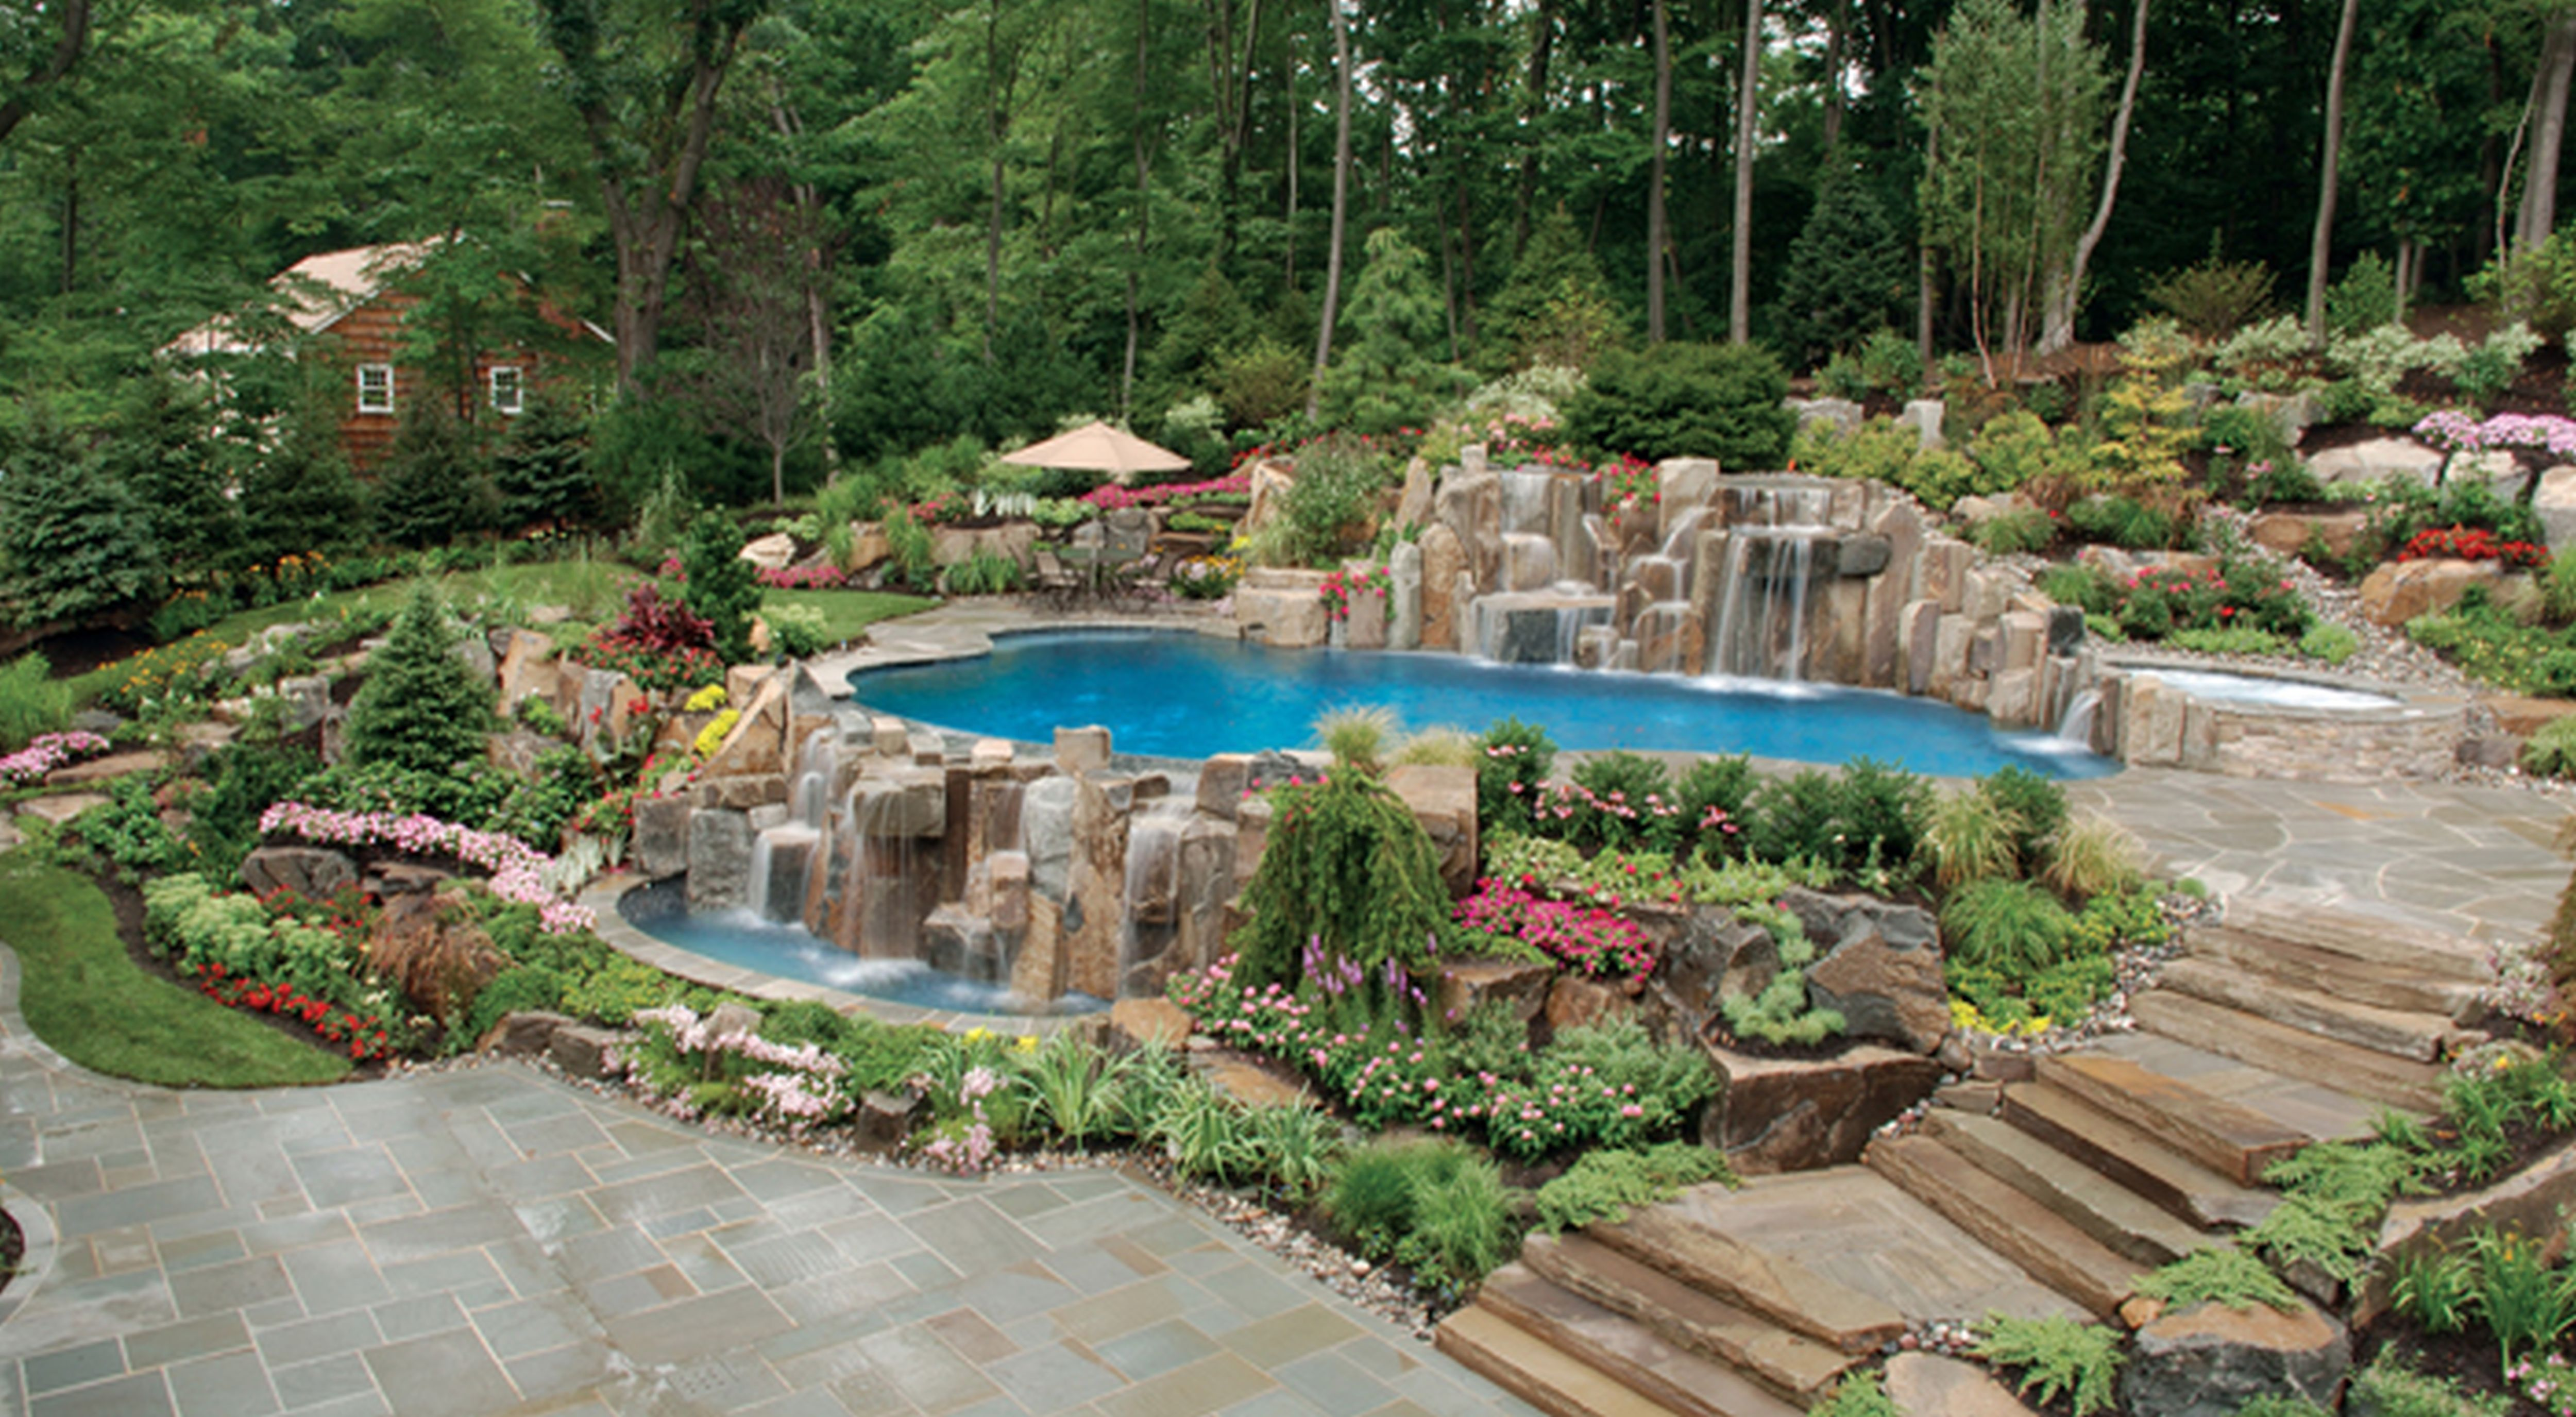 Delightful backyard garden ideas inside likable best for Big garden pools